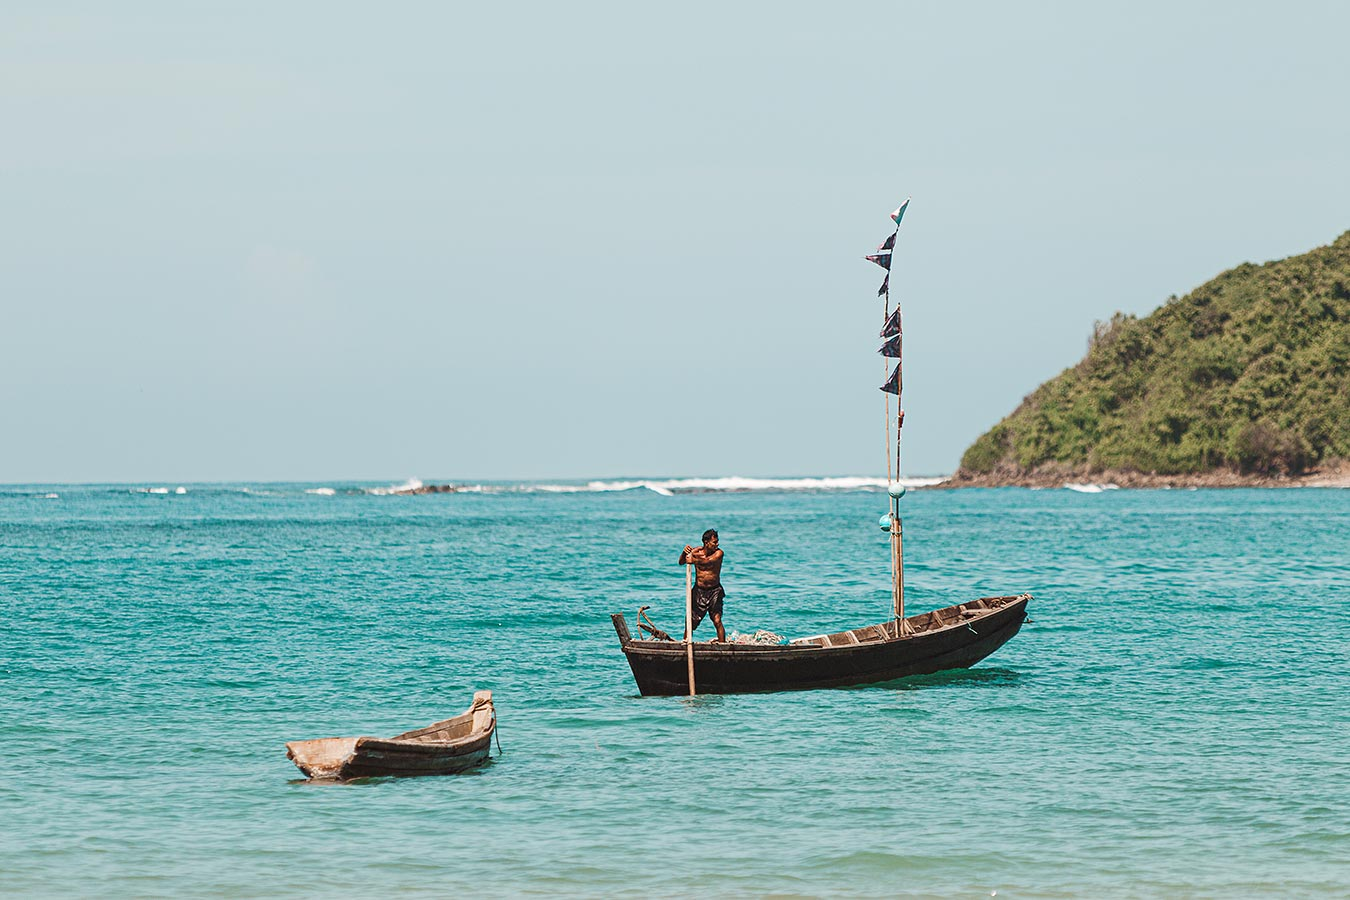 A small fishing boat comes into the harbor - Southeast Asia fishing village